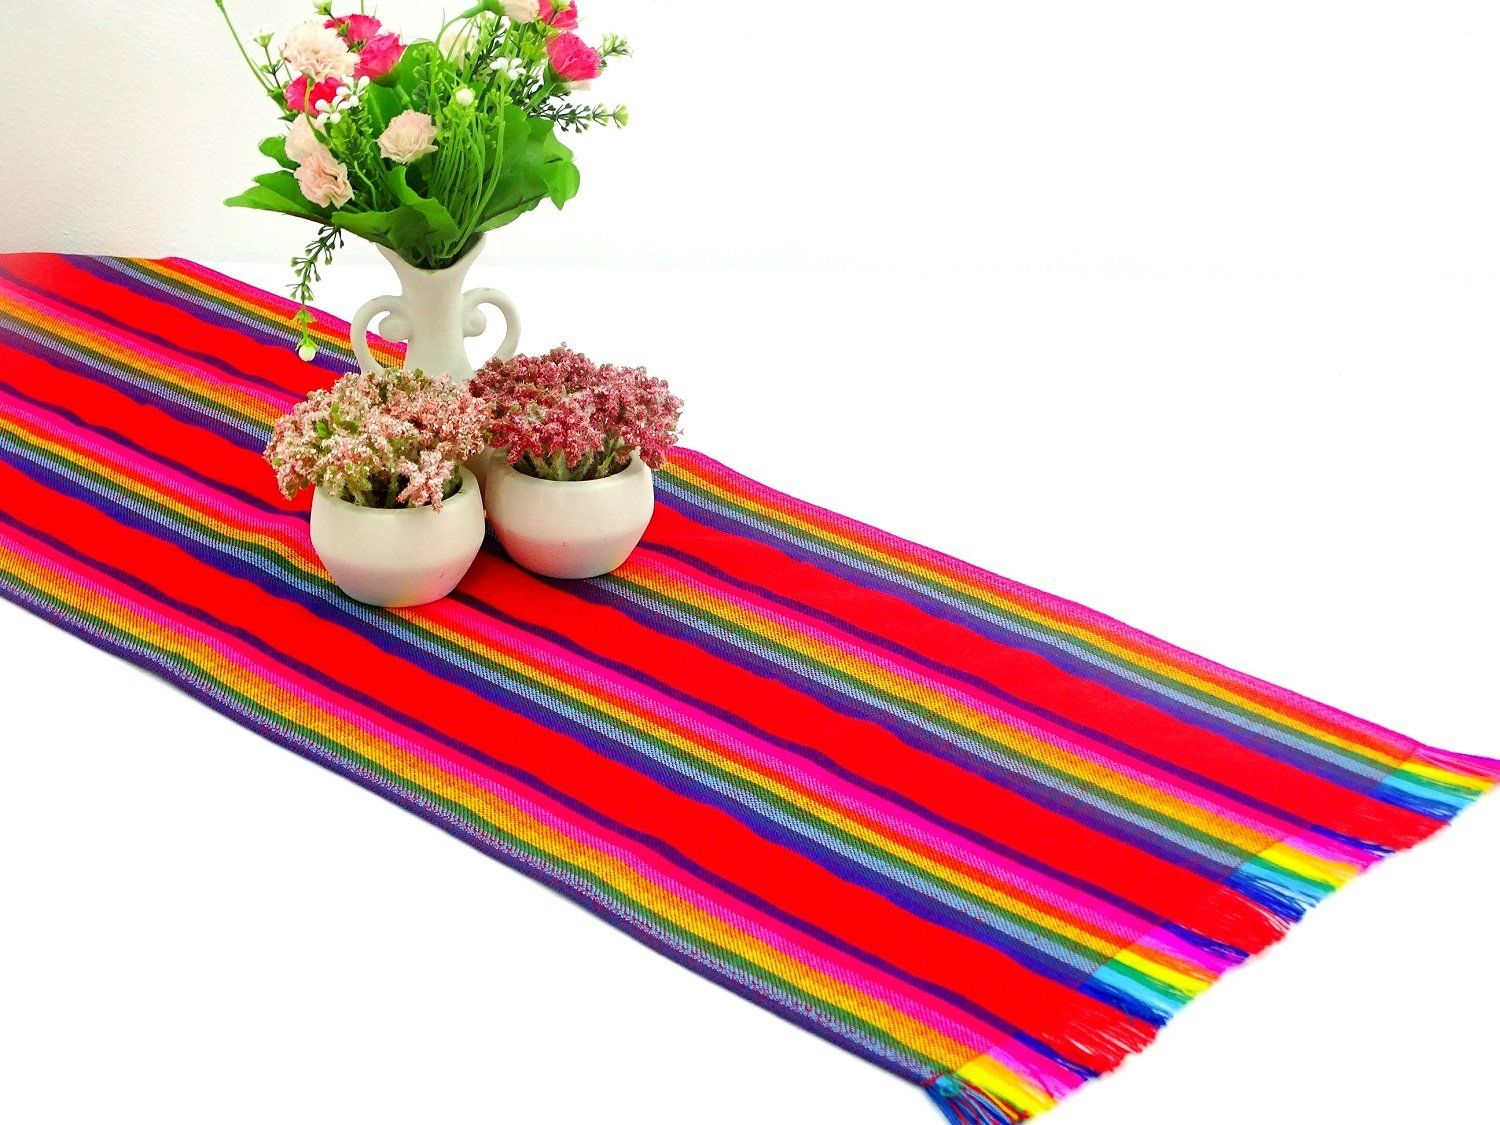 Mexican Table Runner - Mexican Table Runner, Red Table Runner 14x72 Inches, Fiesta Decoration, Cinco De Mayo, Boho Chic Decor, Fiesta Decor Linens.